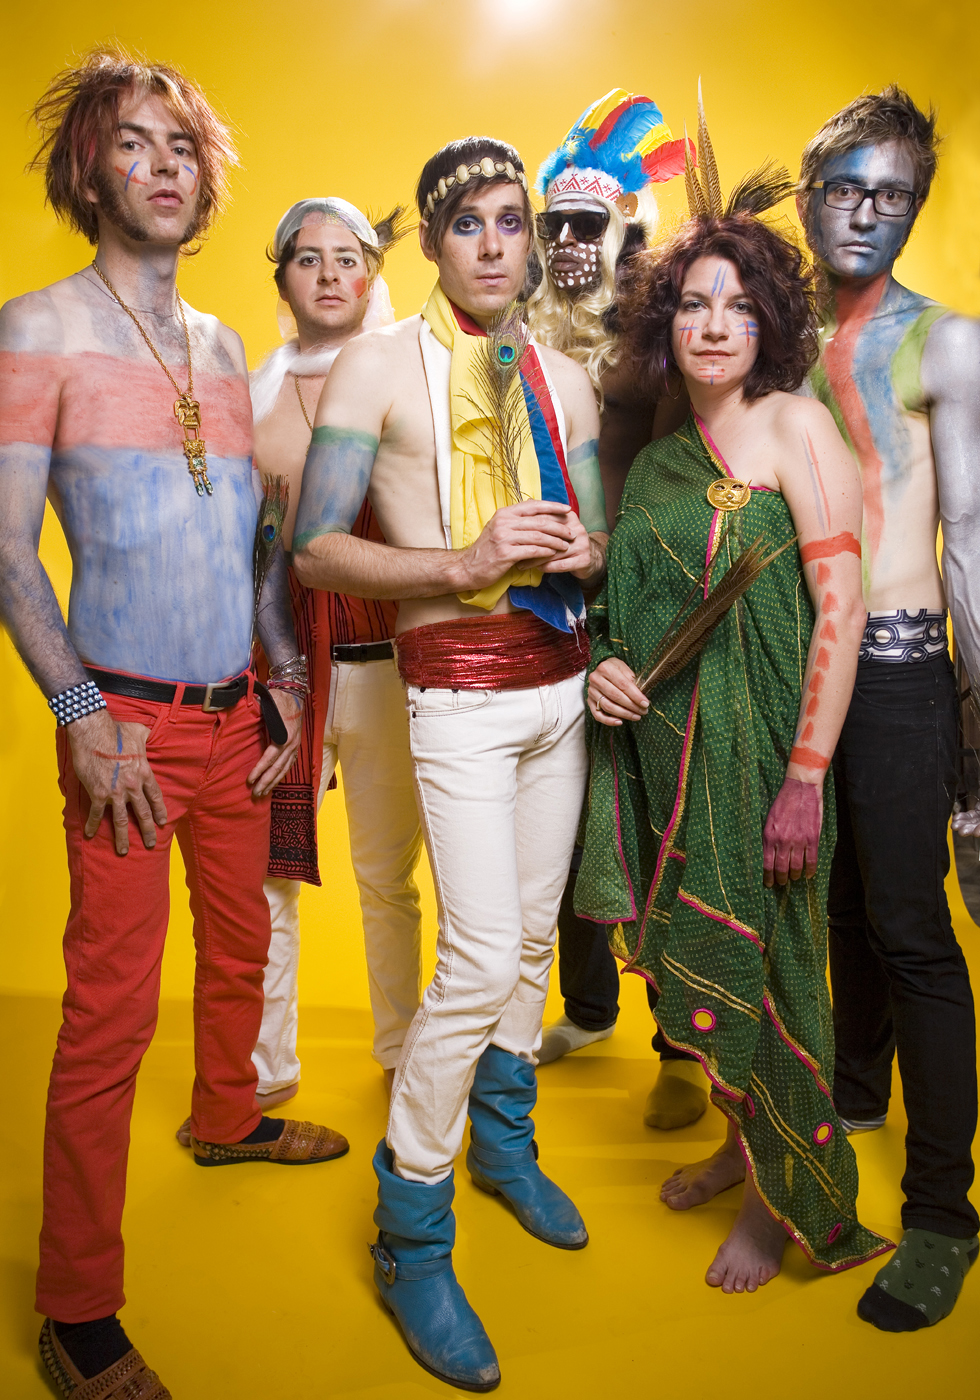 Day for Night Artist Spotlight: of Montreal